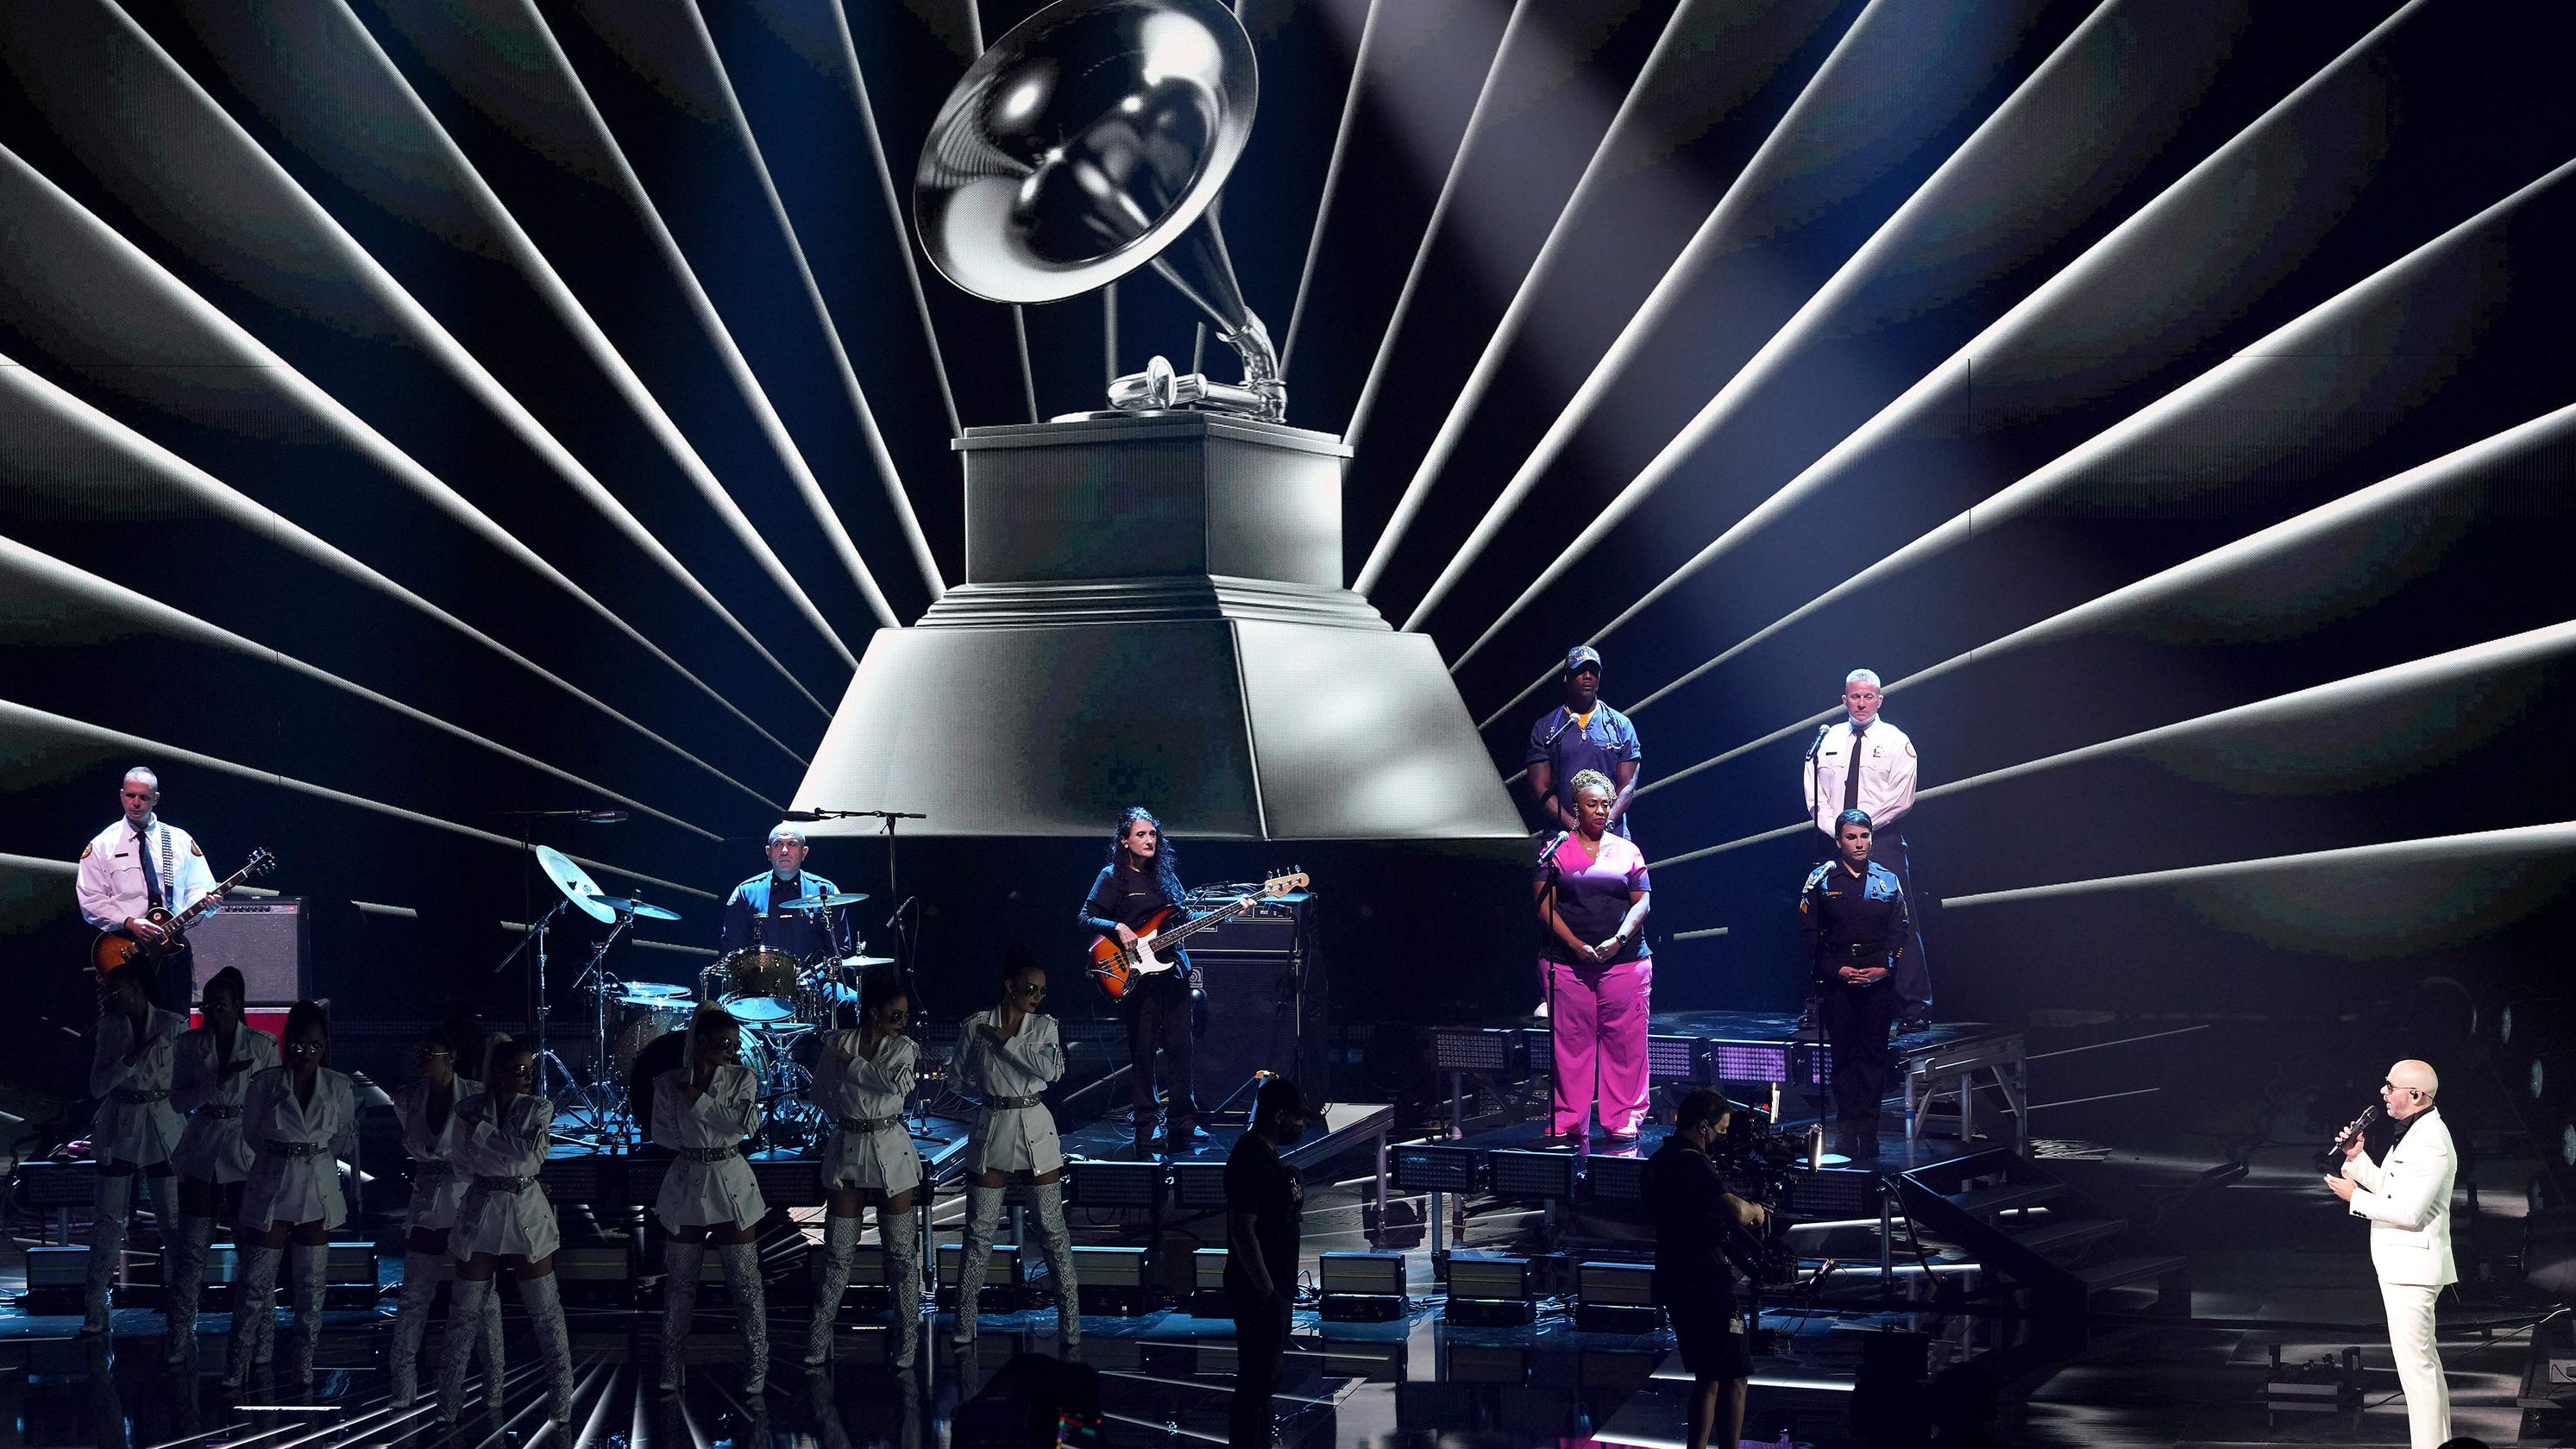 Latin Grammys: Moments you might have missed, from J. Balvin to Pitbull's tribute to front-line workers